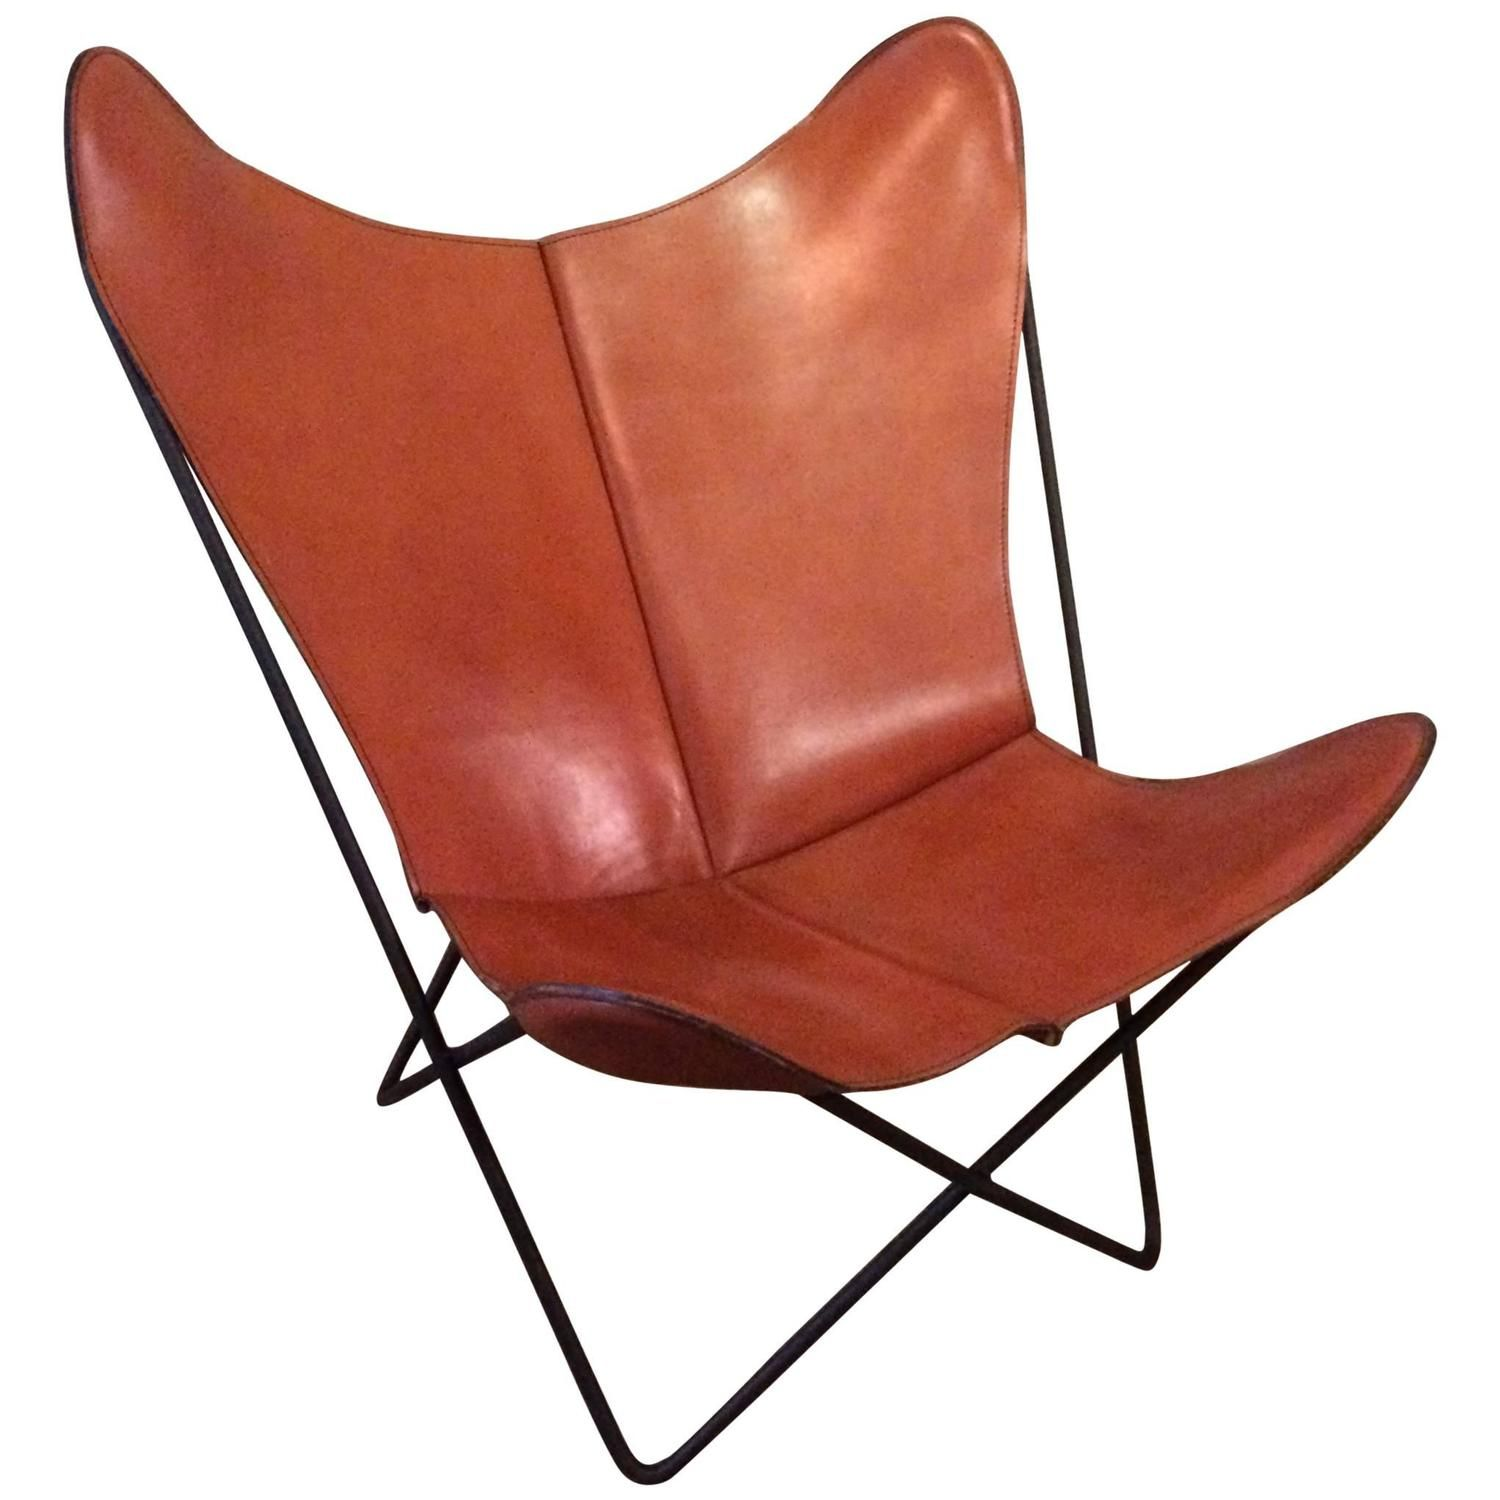 Butterfly Chair Knoll Leather Butterfly Chair By Jorge Ferrari Hardoy For Knoll From A